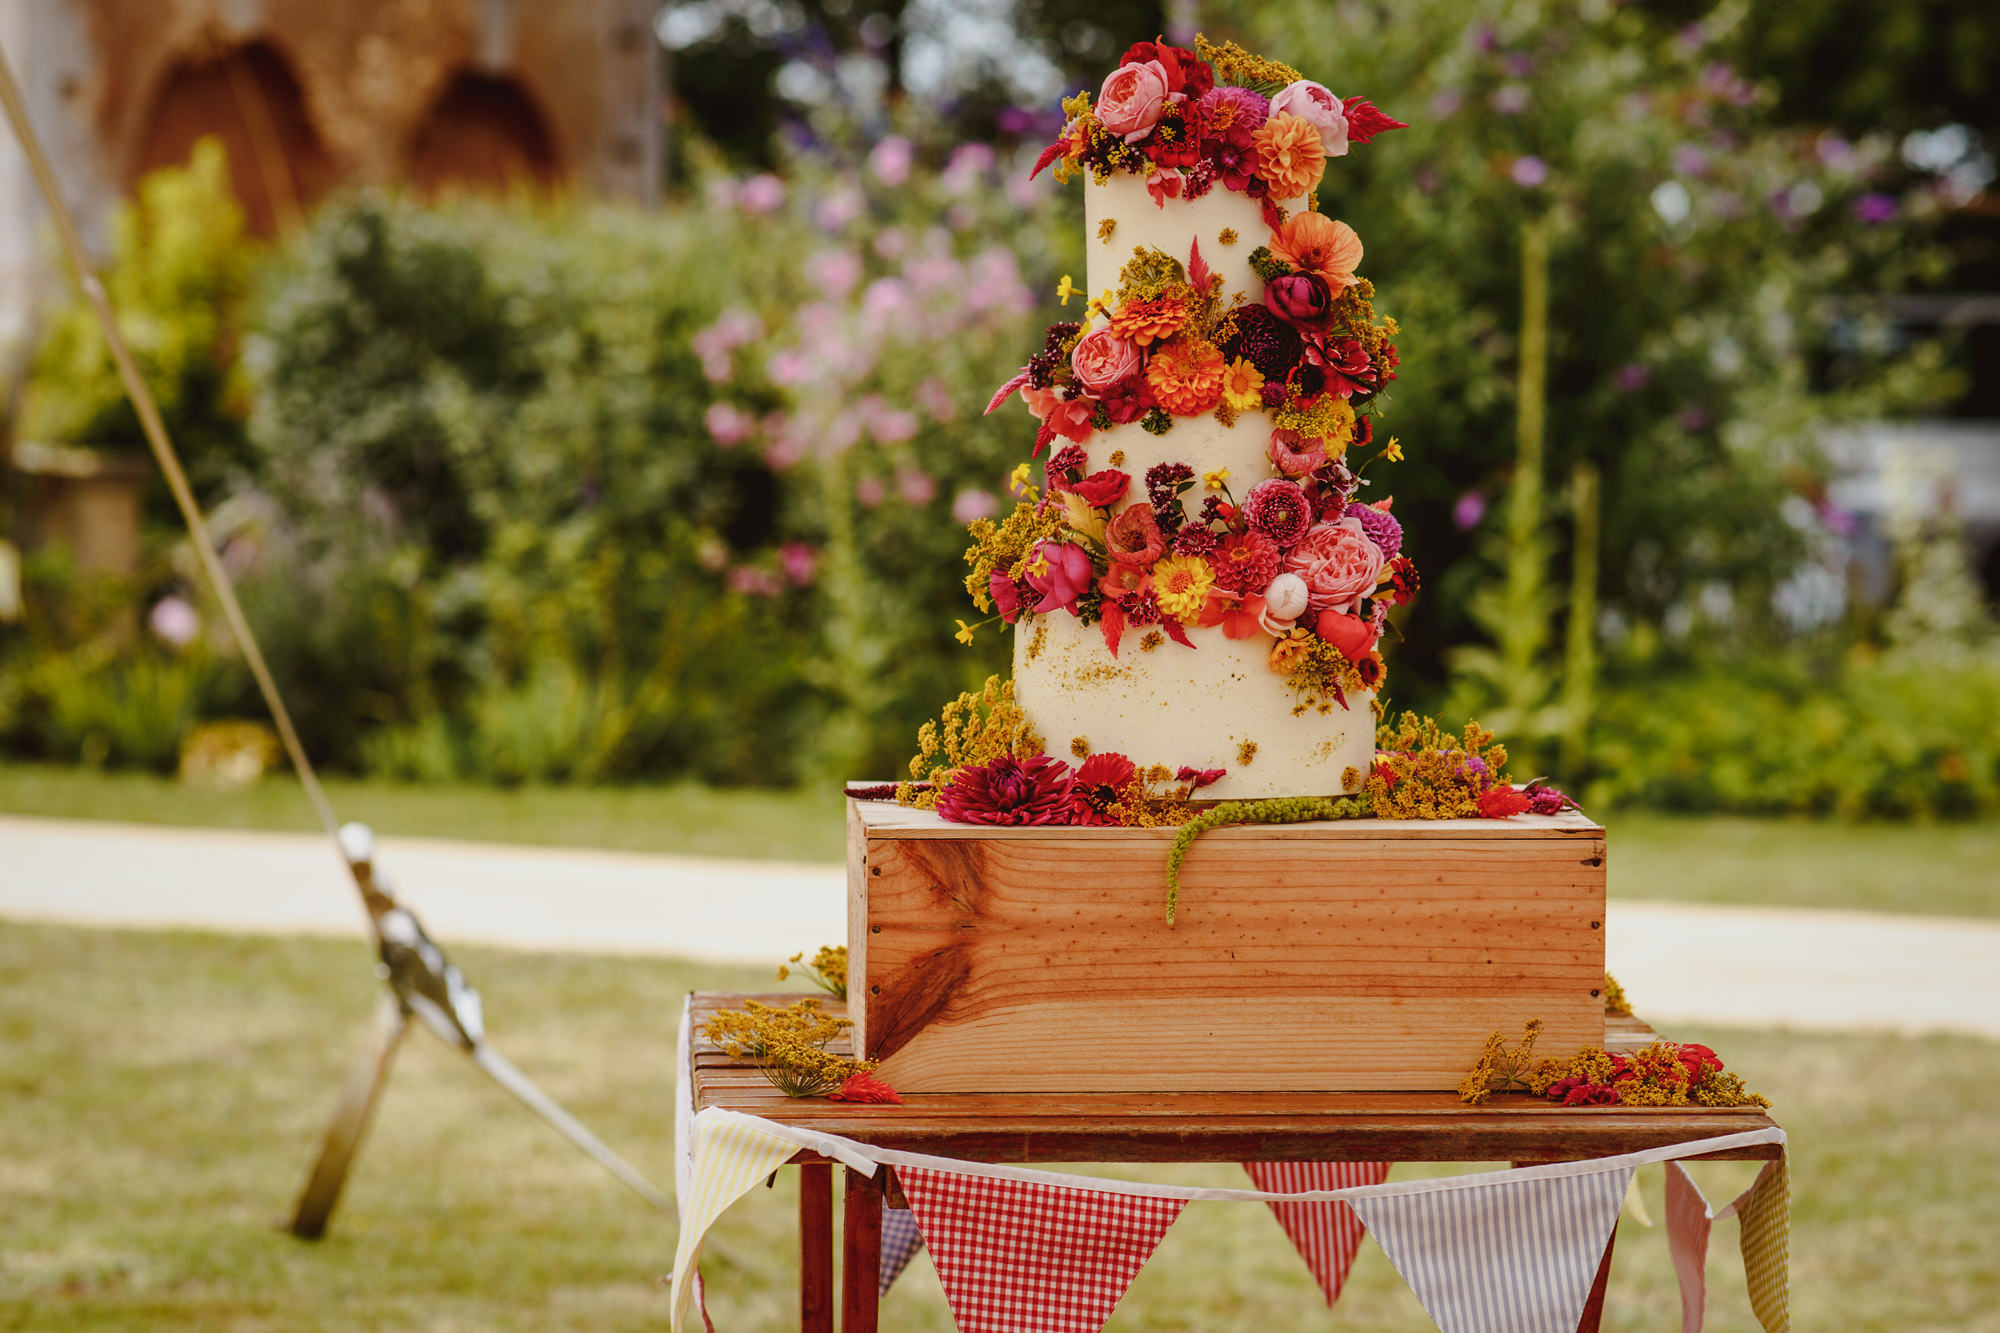 Three tiered cake decorated with floral decorations - photo by Tomas Juskaitis Photography